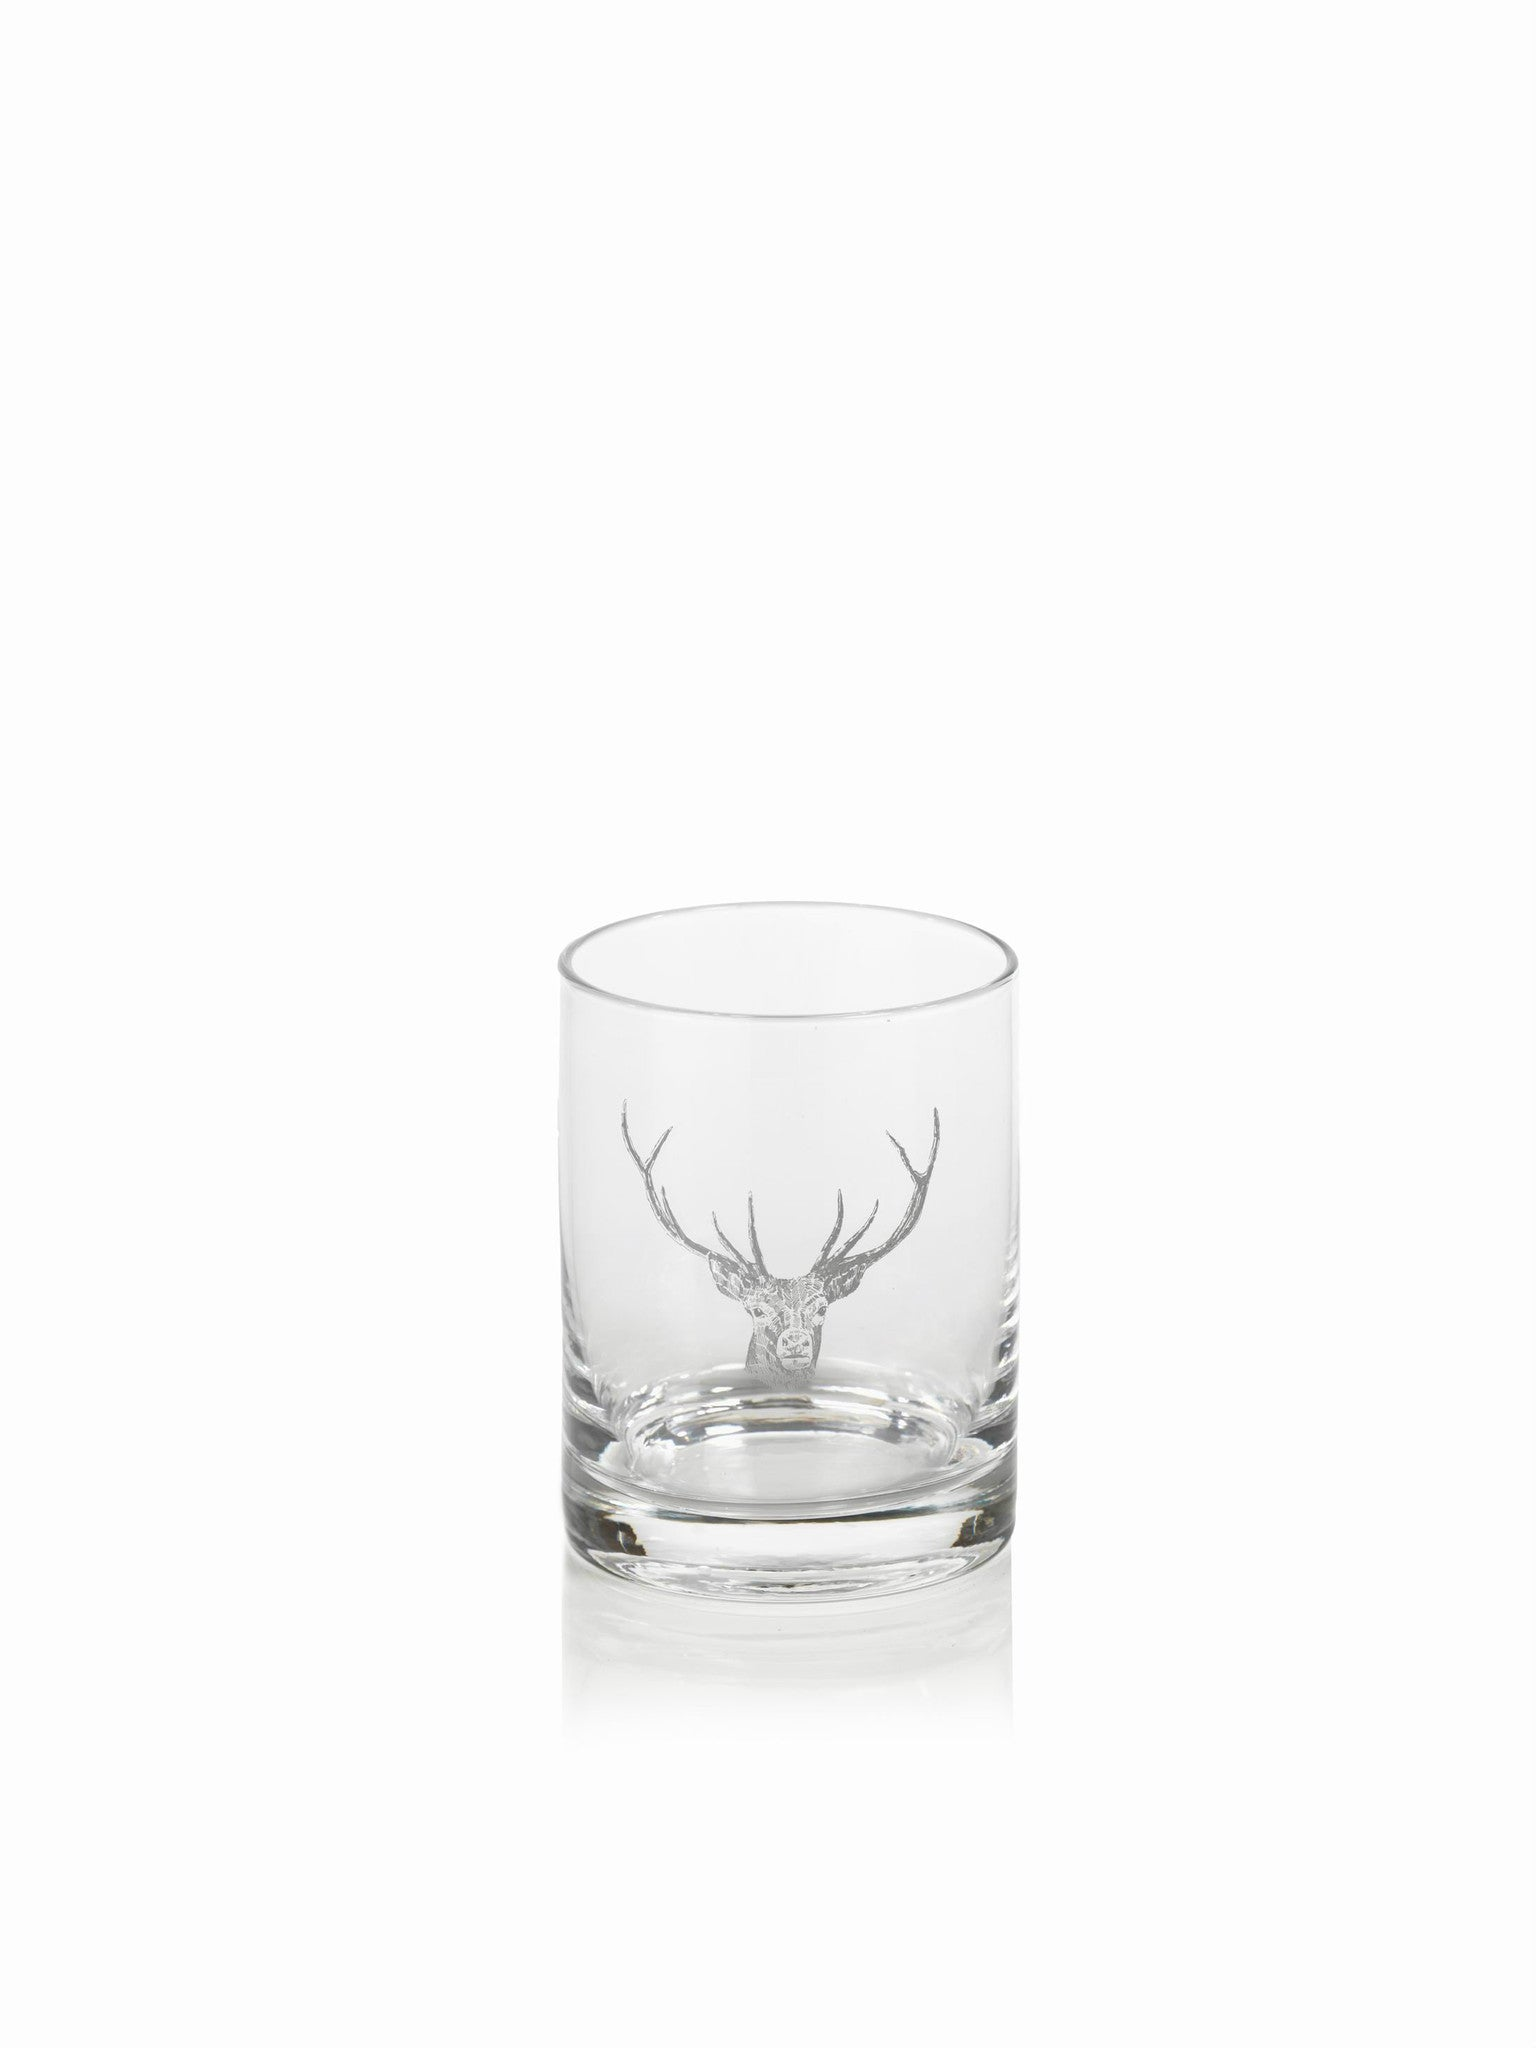 Stag Head Pitcher and Glassware - DOF Glasses-Set/6 - CARLYLE AVENUE - 3